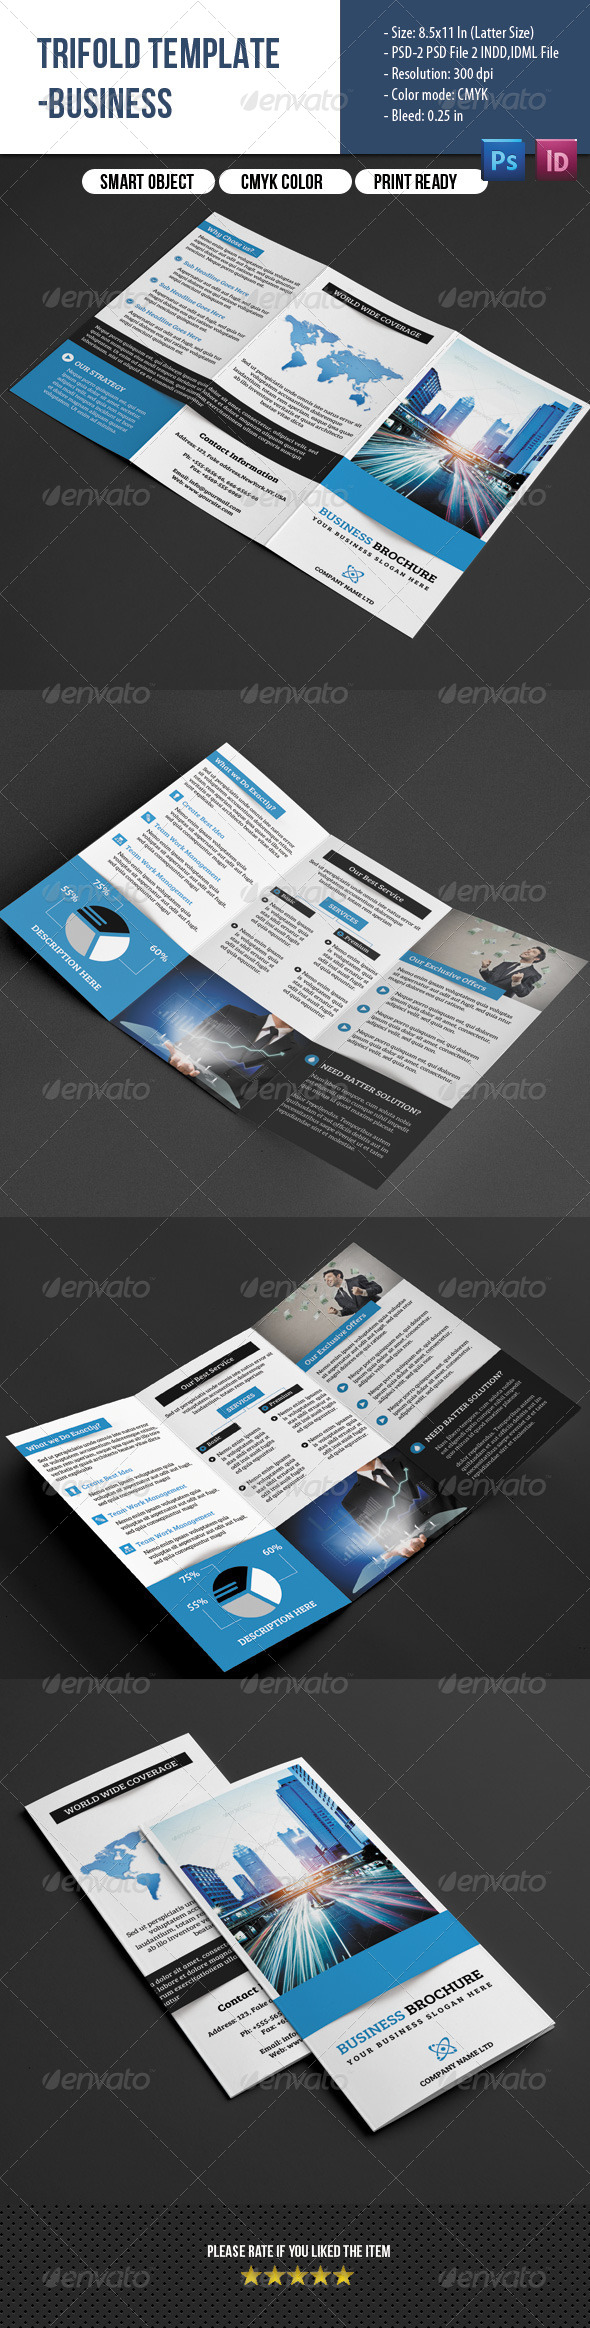 GraphicRiver Trifold Business Brochure 7814091